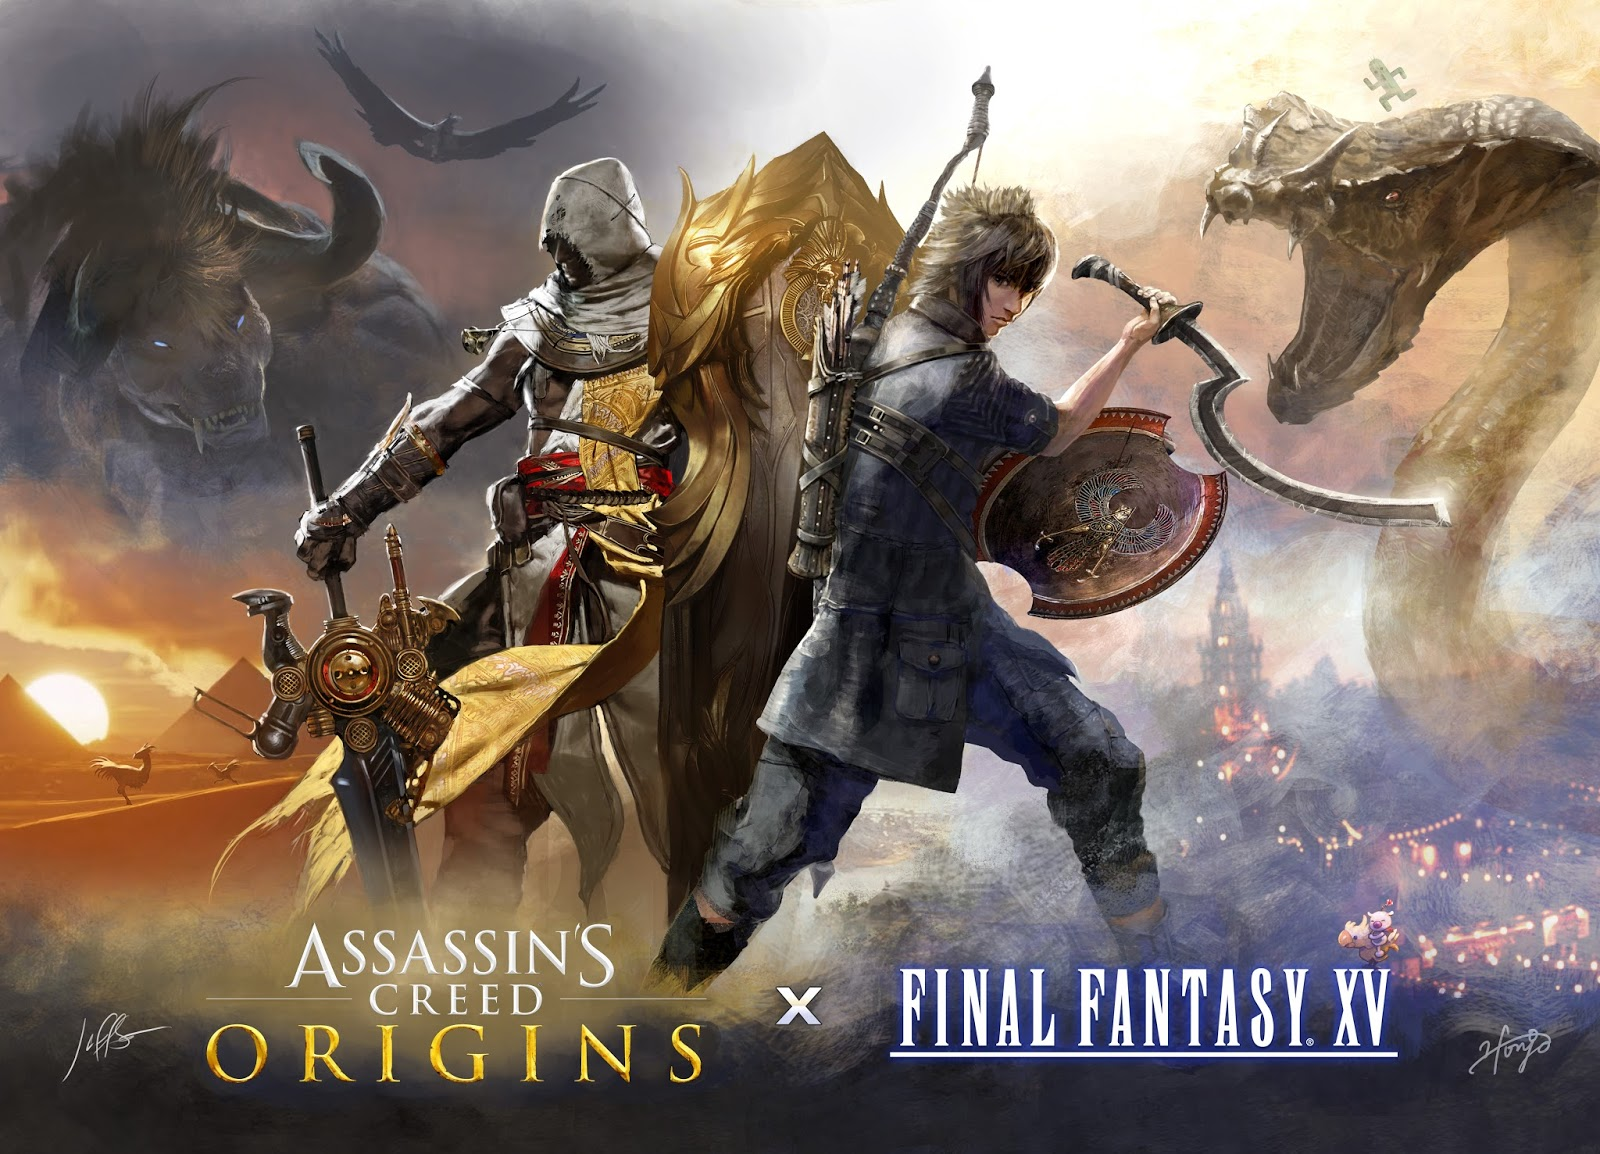 Anuncian espectacular colaboración entre Assassin's Creed y Final Fantasy XV